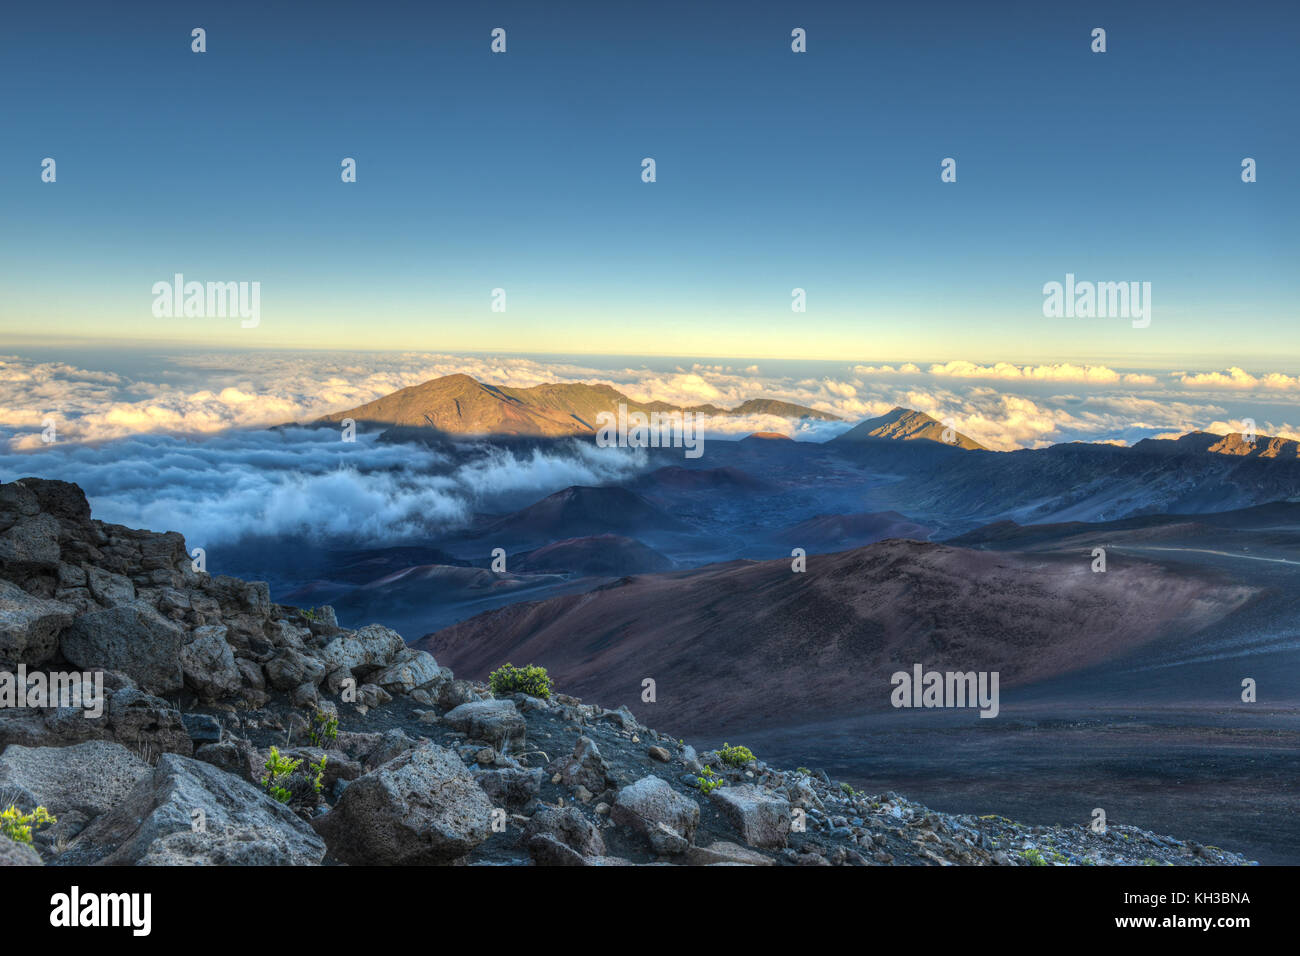 Caldera of the Haleakala volcano (Maui, Hawaii) at sunset. Stock Photo